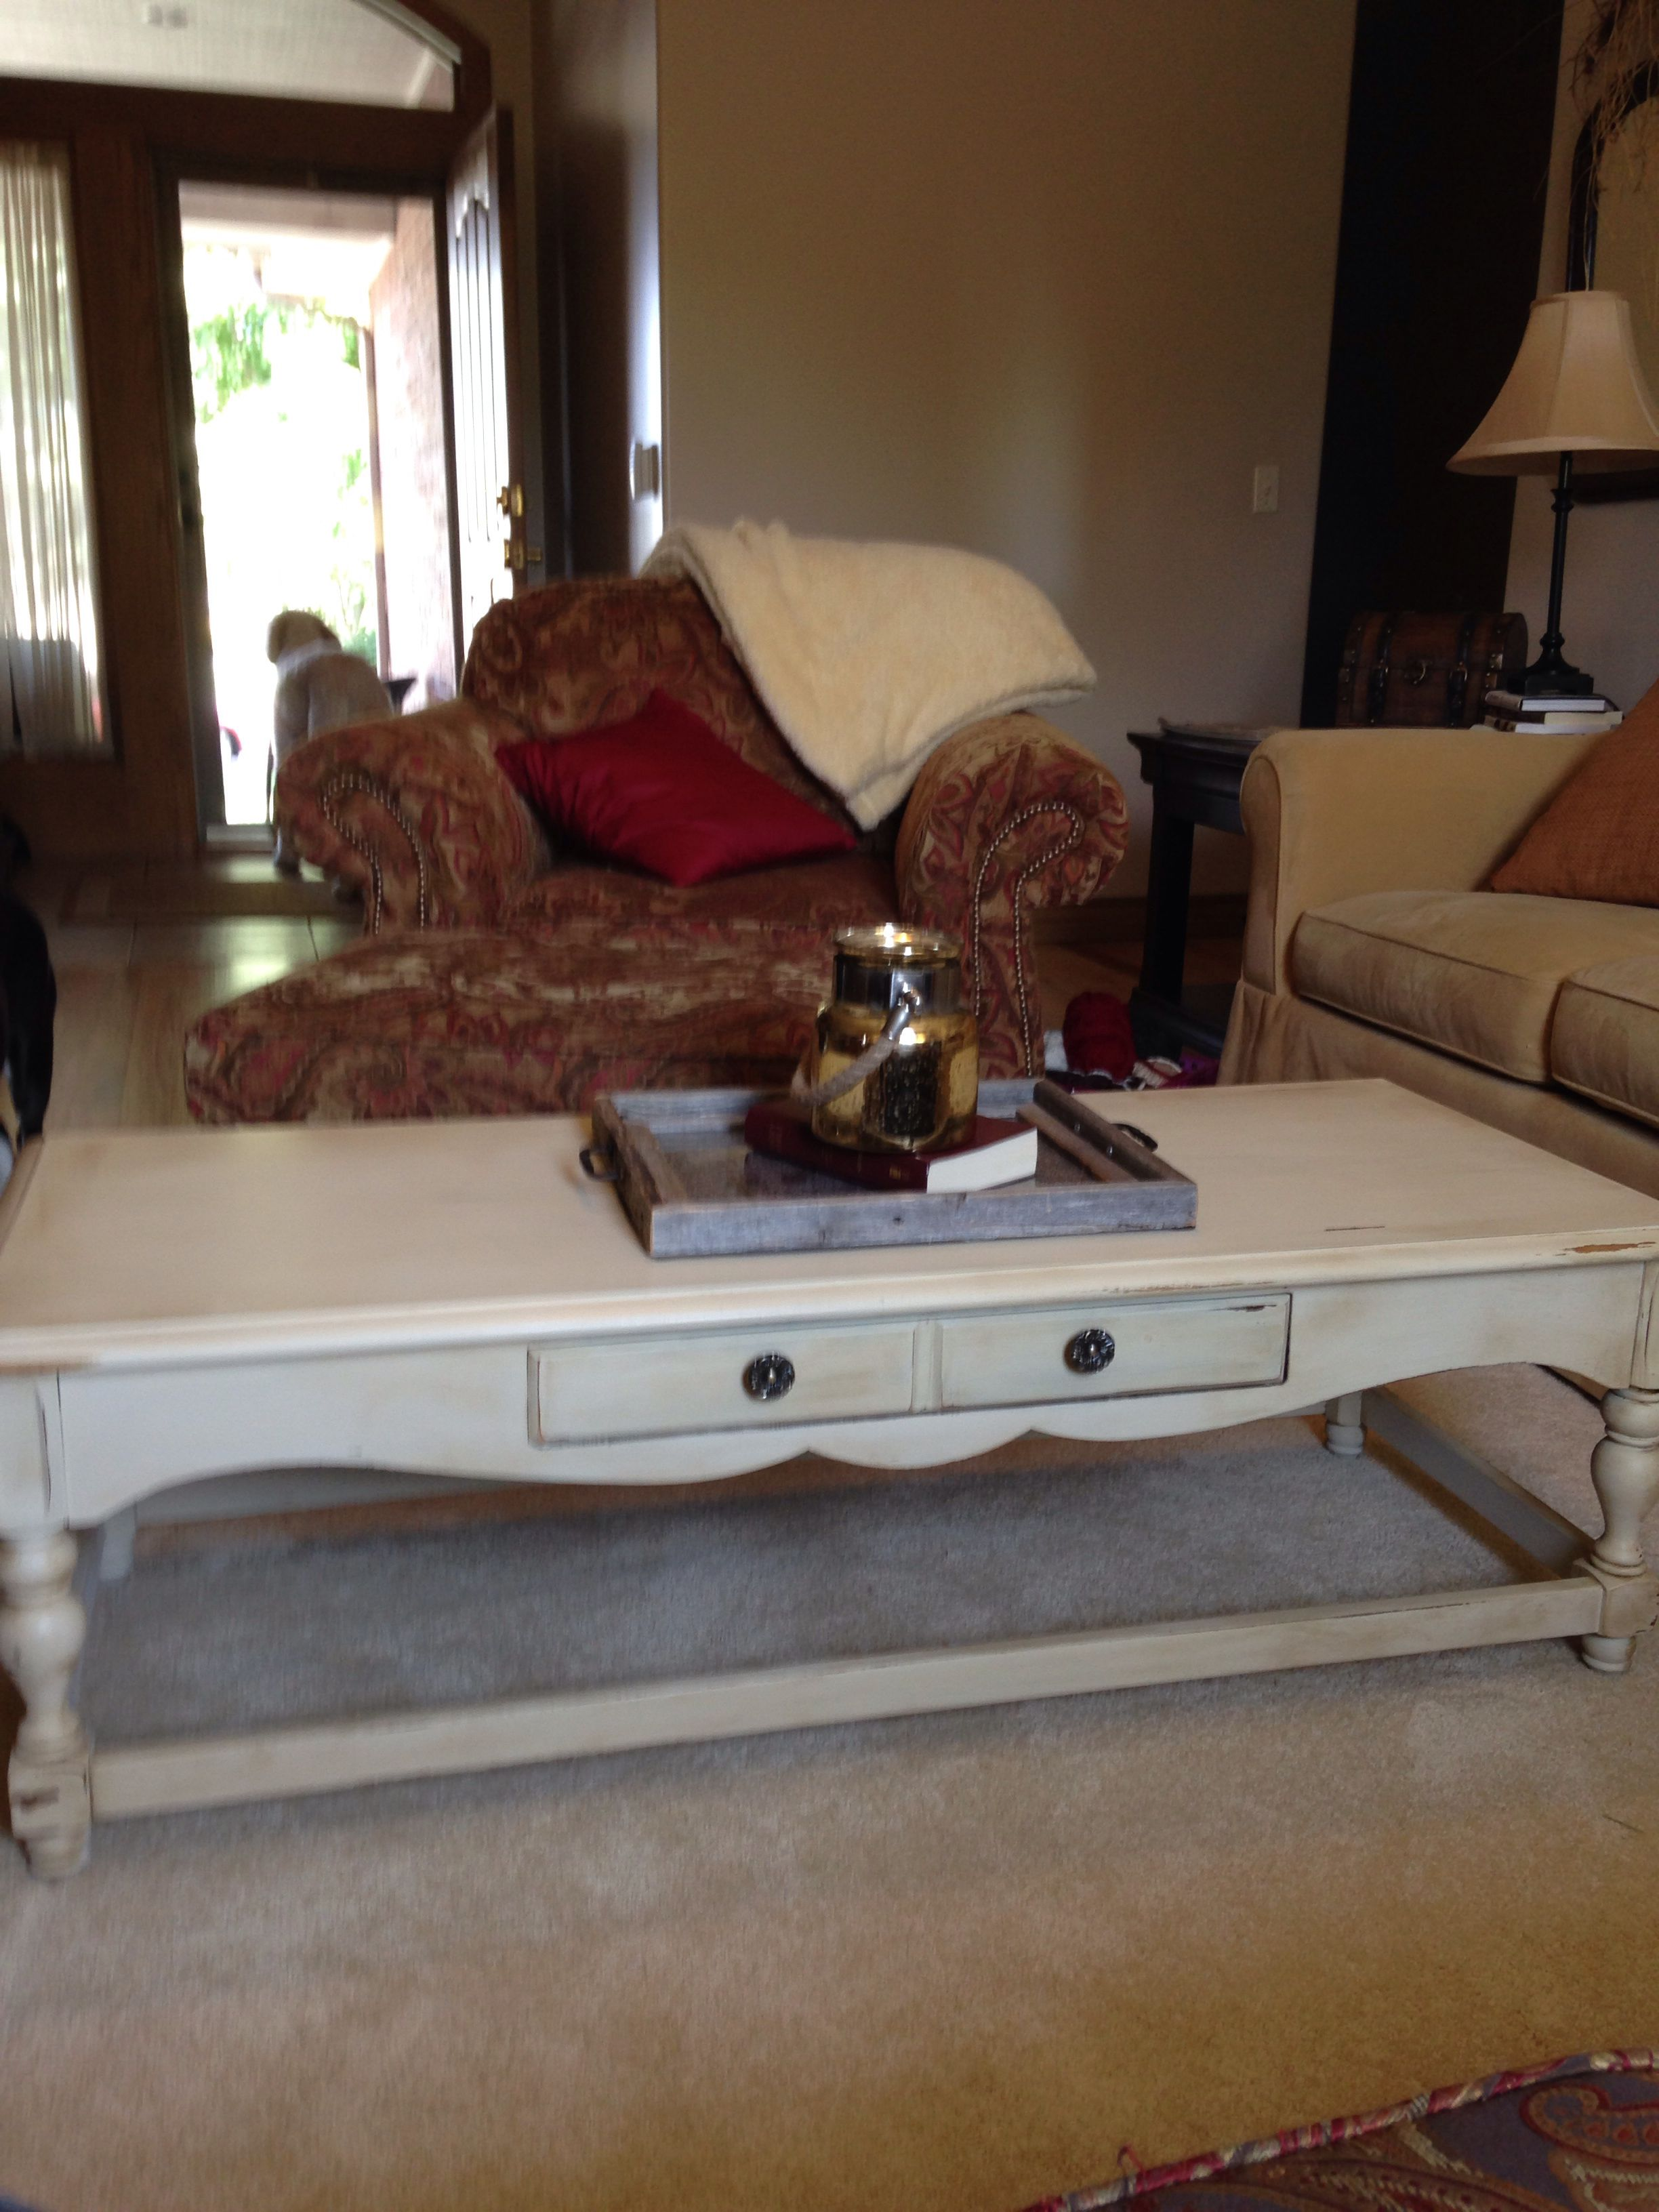 Garage sale coffee table all fixed up